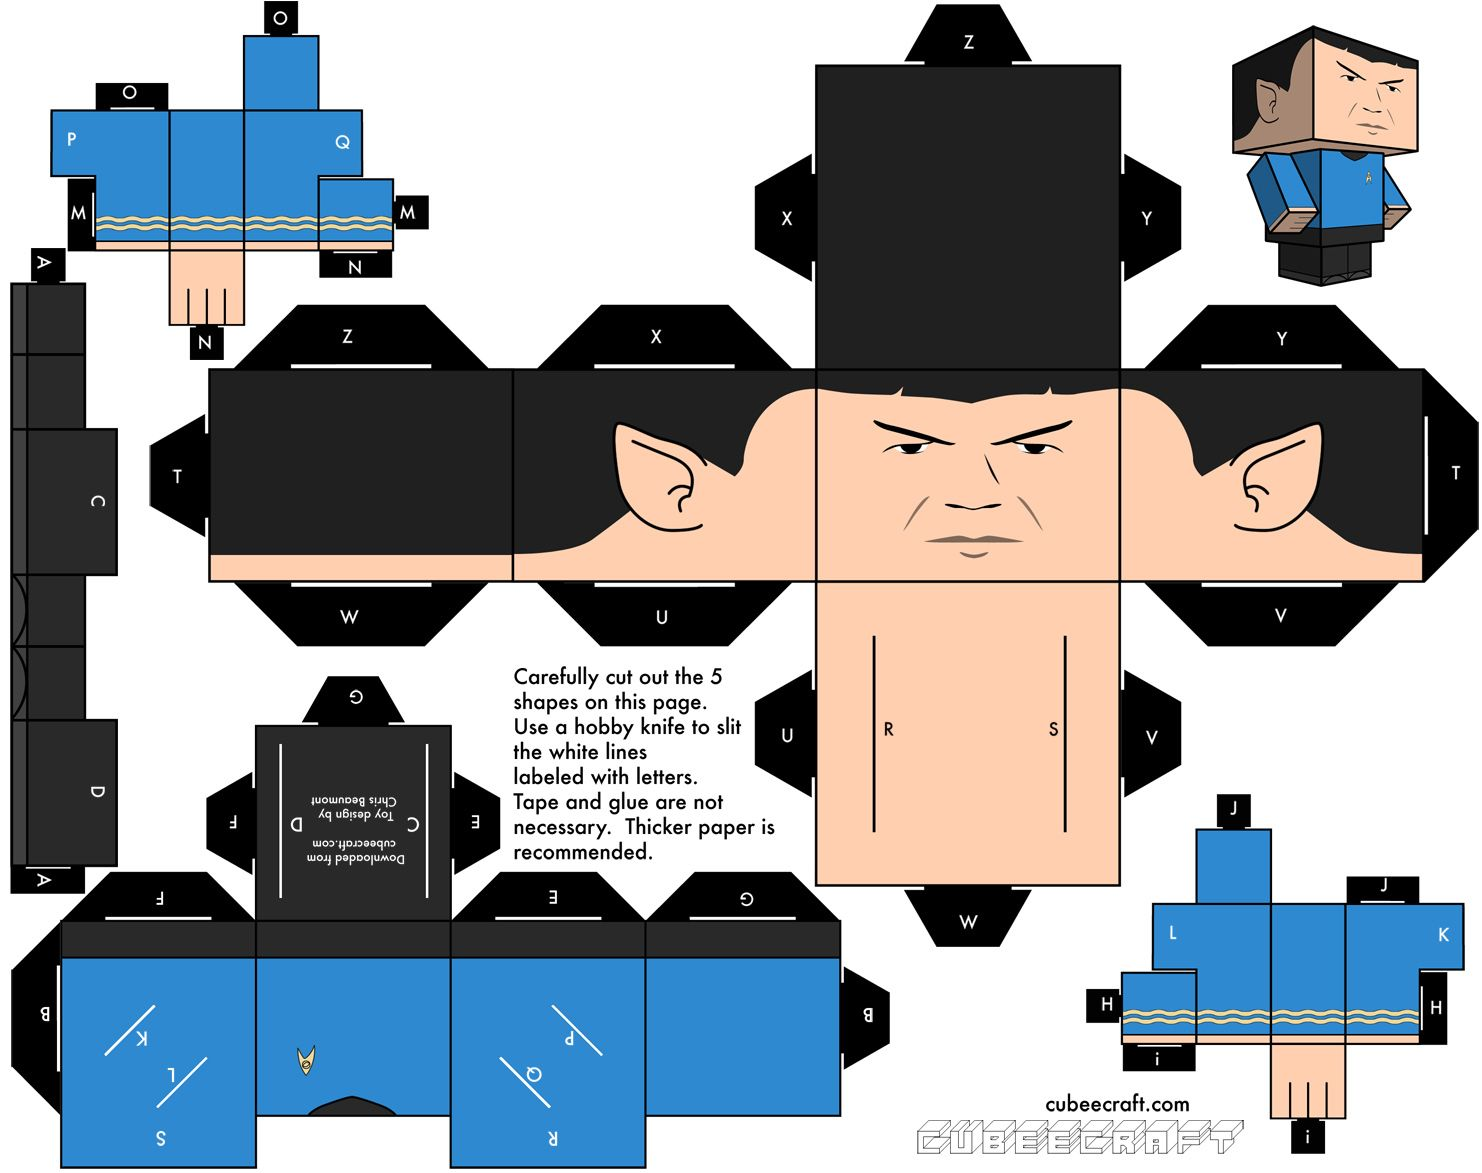 Diy coutout cubee paper character spock from star trek epic diy coutout cubee paper character spock from star trek pronofoot35fo Choice Image